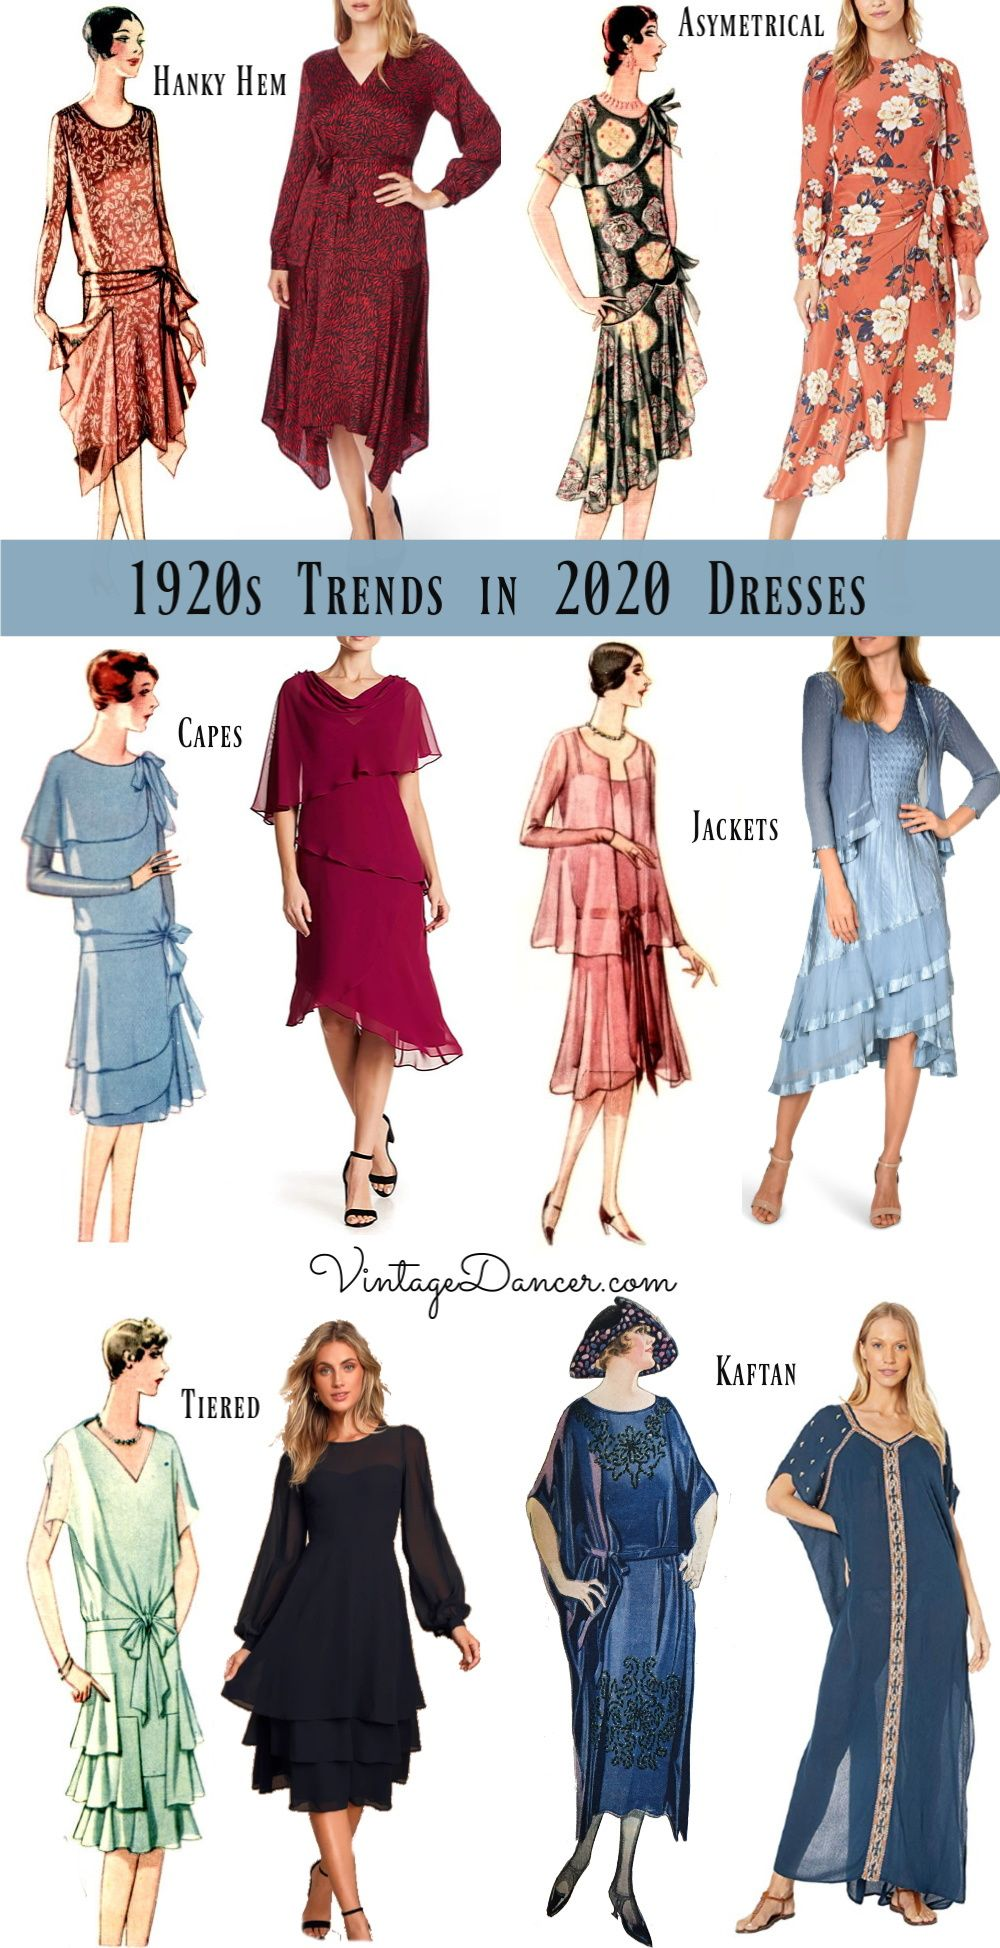 1920s Style Dresses In 2020 In 2020 1920s Outfits 1920s Fashion Dresses 1920s Fashion